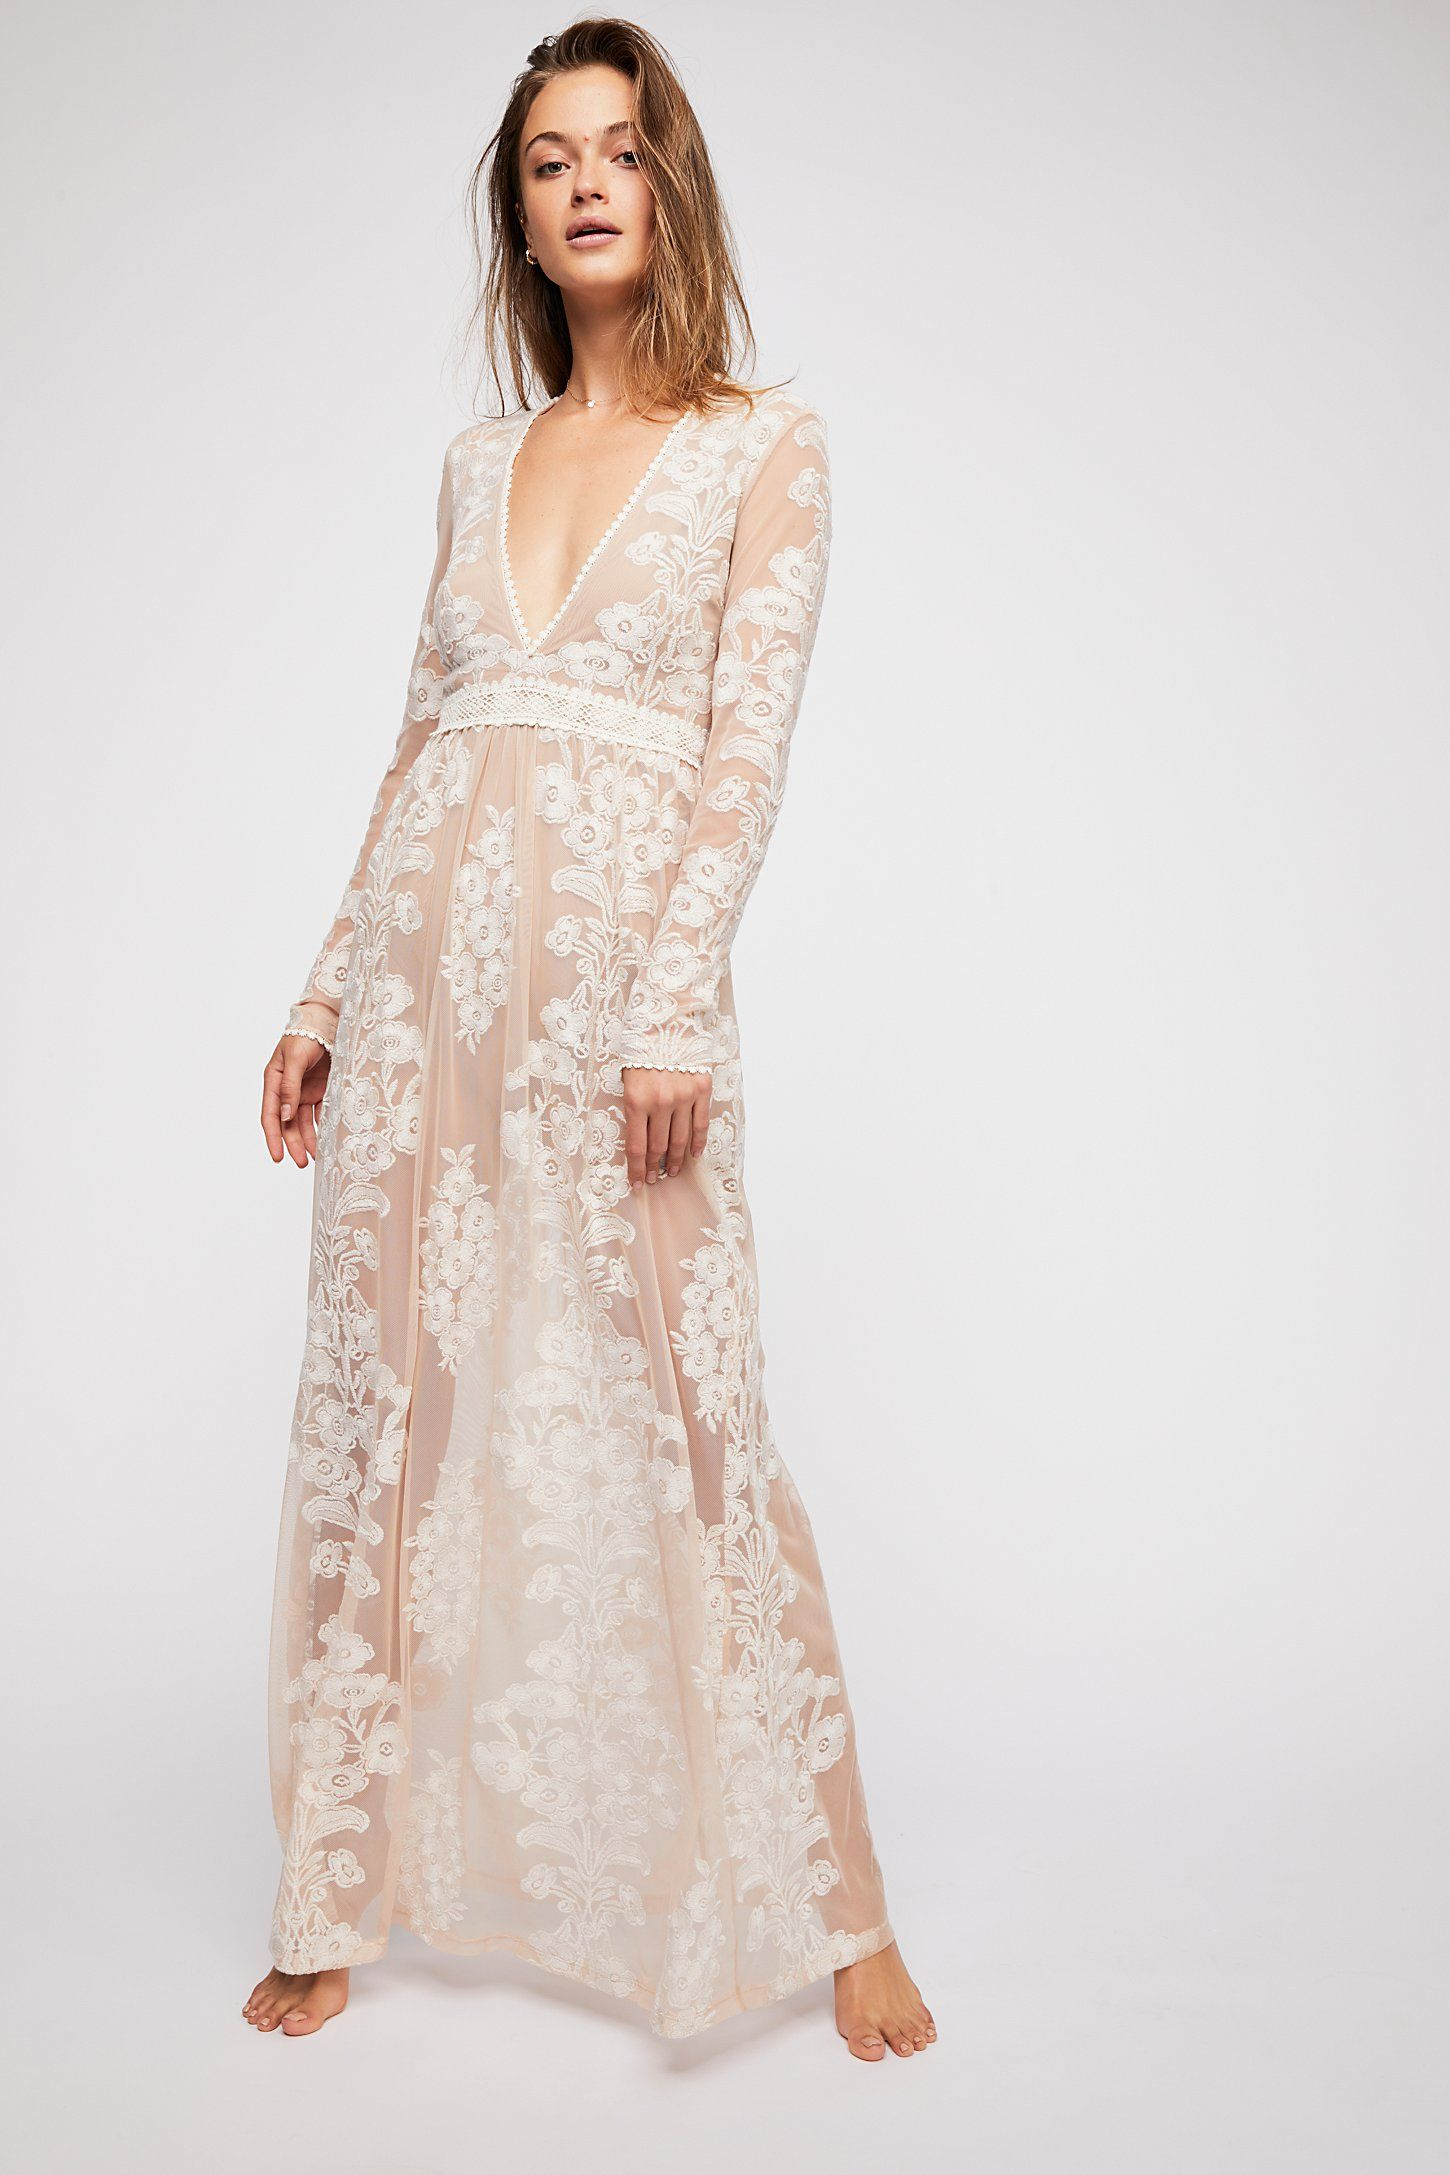 fe2520252d9 Temecula Maxi Dress in 2019